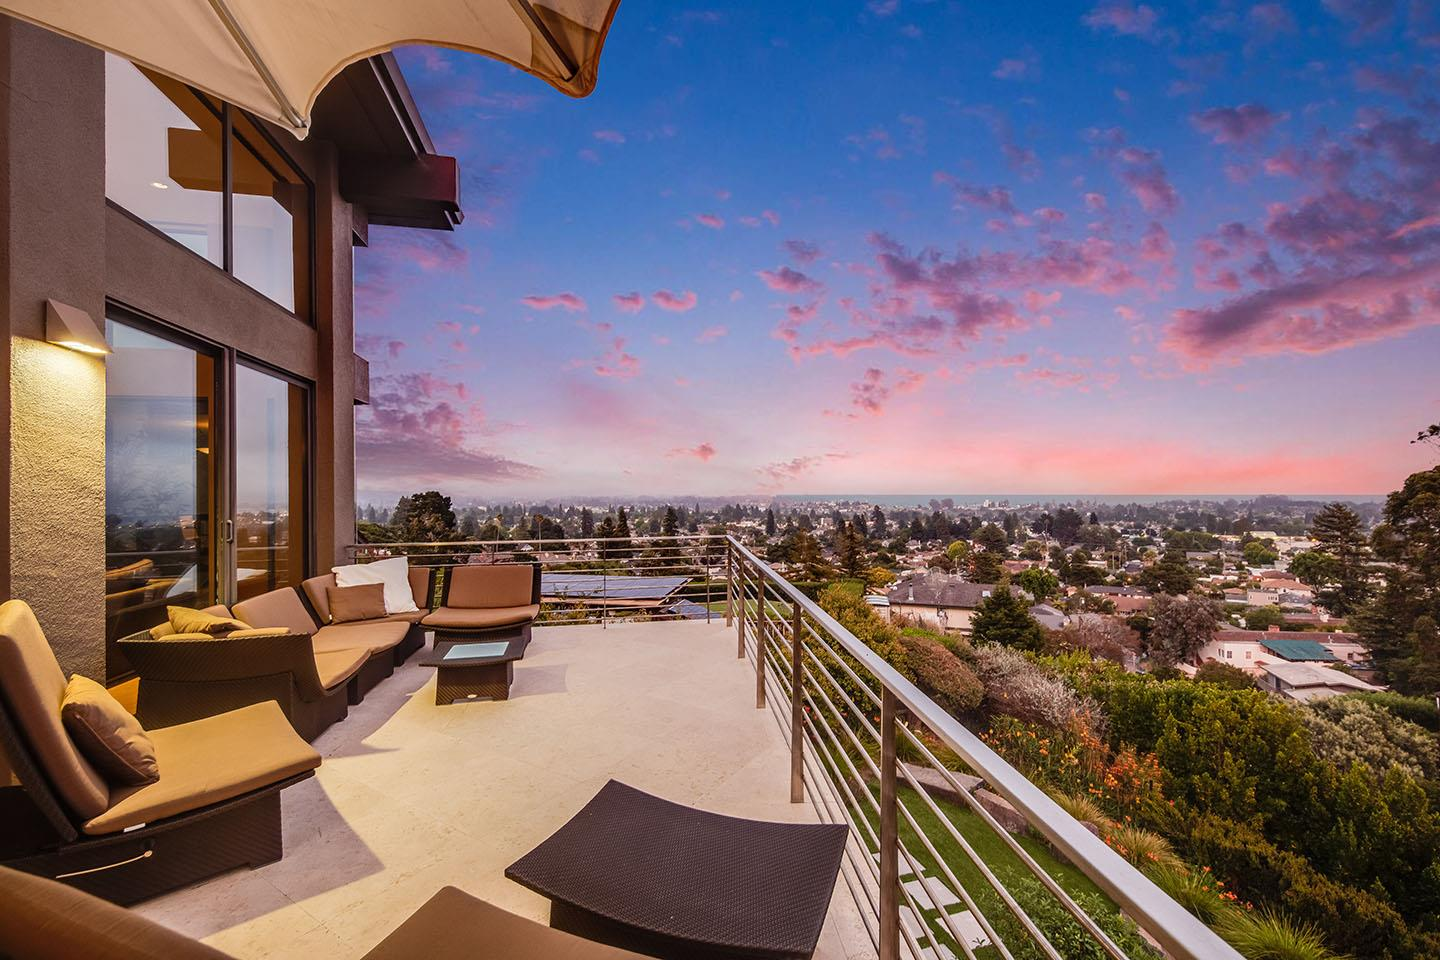 This magnificent, one-of-a-kind, custom masterpiece was built in 2007 and has been impeccably maintained in pristine condition. Renowned architects, Gary Garmann + Thatcher Thompson, designed this awe-inspiring abode. Builder, Jon Badeaux, added a level of quality rarely seen in construction today. This ridge top oasis in the sought after upper West Side is set back from the street, hidden in a private enclave which makes it a rare offering. This spectacular home with sweeping views of the bay and city lights is truly impressive & perfect for entertaining.  The many private spaces are ideal for tranquil & comfortable living. Some of the many remarkable features include, but are not limited to, a cherrywood elevator, limestone floors throughout much of the home, walls of windows showcasing breathtaking views, high ceilings, 9' solid wood doors, top of the line kitchen amenities, a huge pantry, radiant heat and much more. See the home brochure for a complete list of special features.